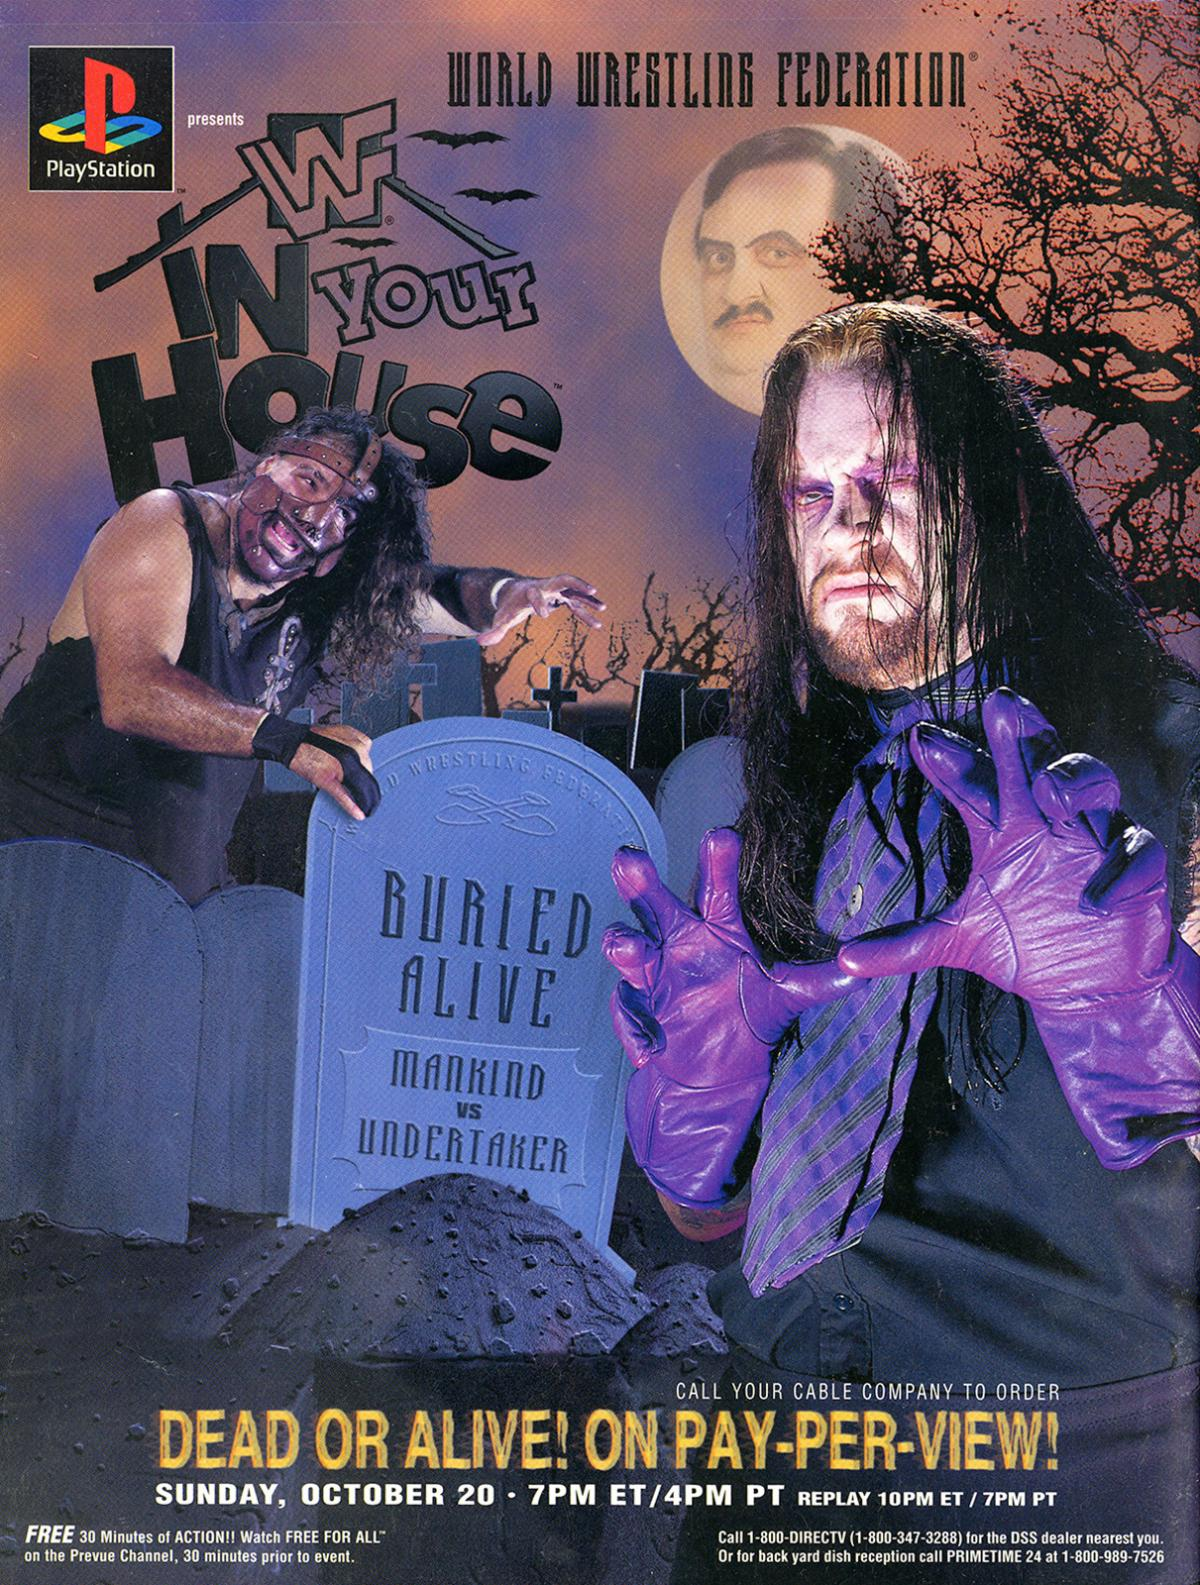 037_Taker_posters0003--7cd85a9645ae42e570739d01016a3501